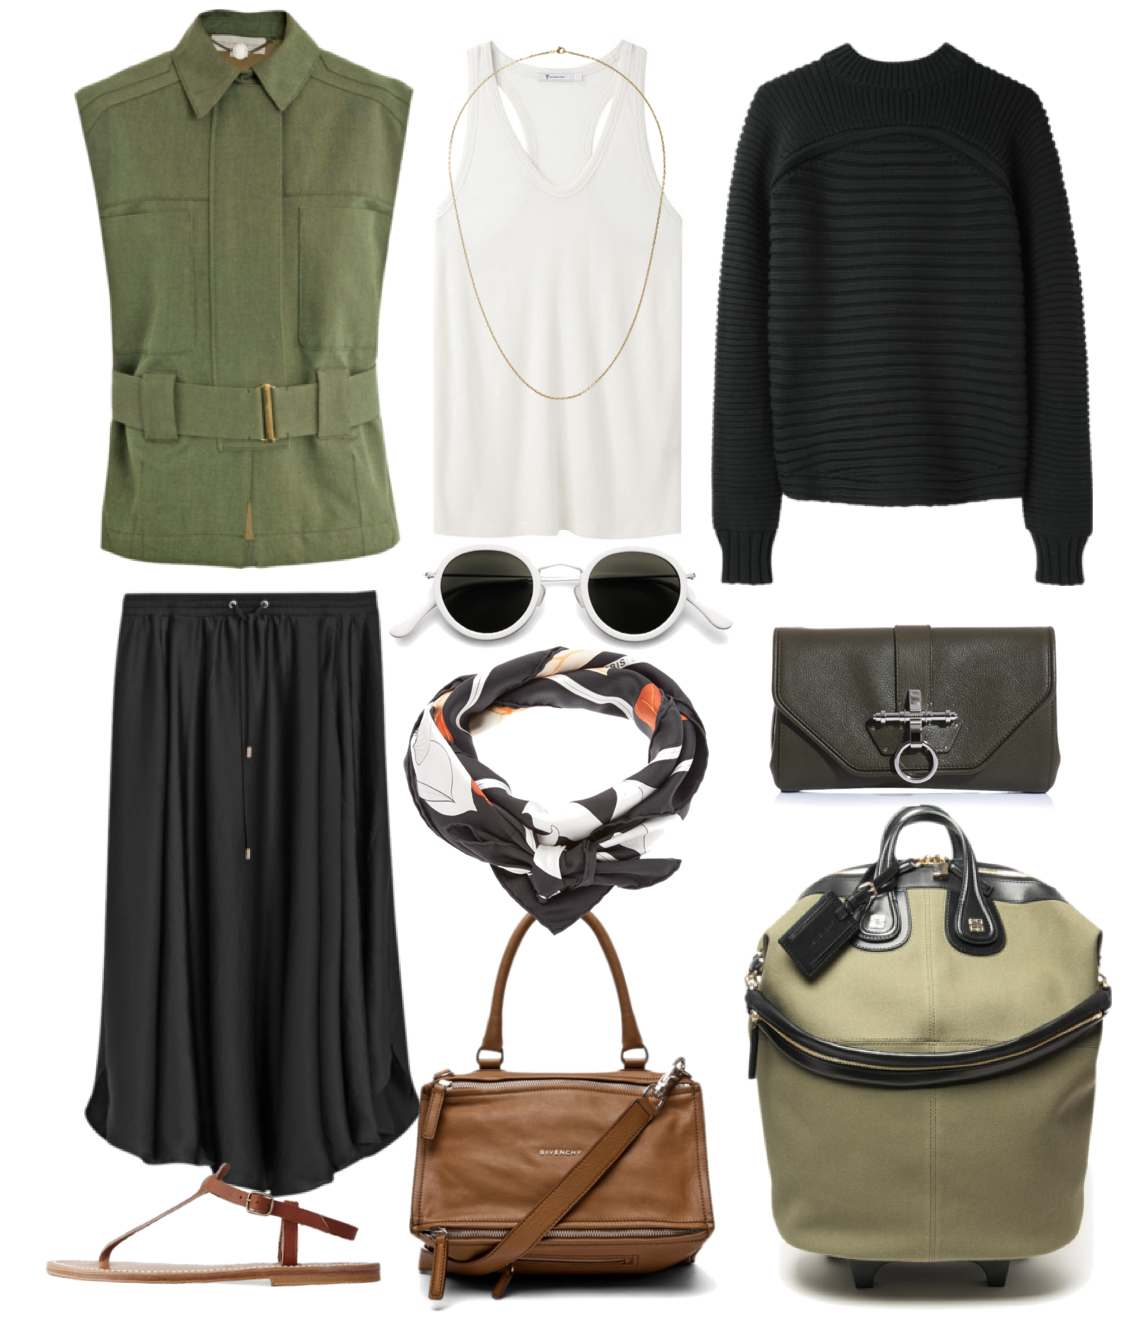 Safari chic - Stella McCartney vest, Alexander Wang tops, Filippa K skirt, Givenchy bags, Acne sunglasses and Hermes scarf, K Jacques sandals &amp; Repossi necklace